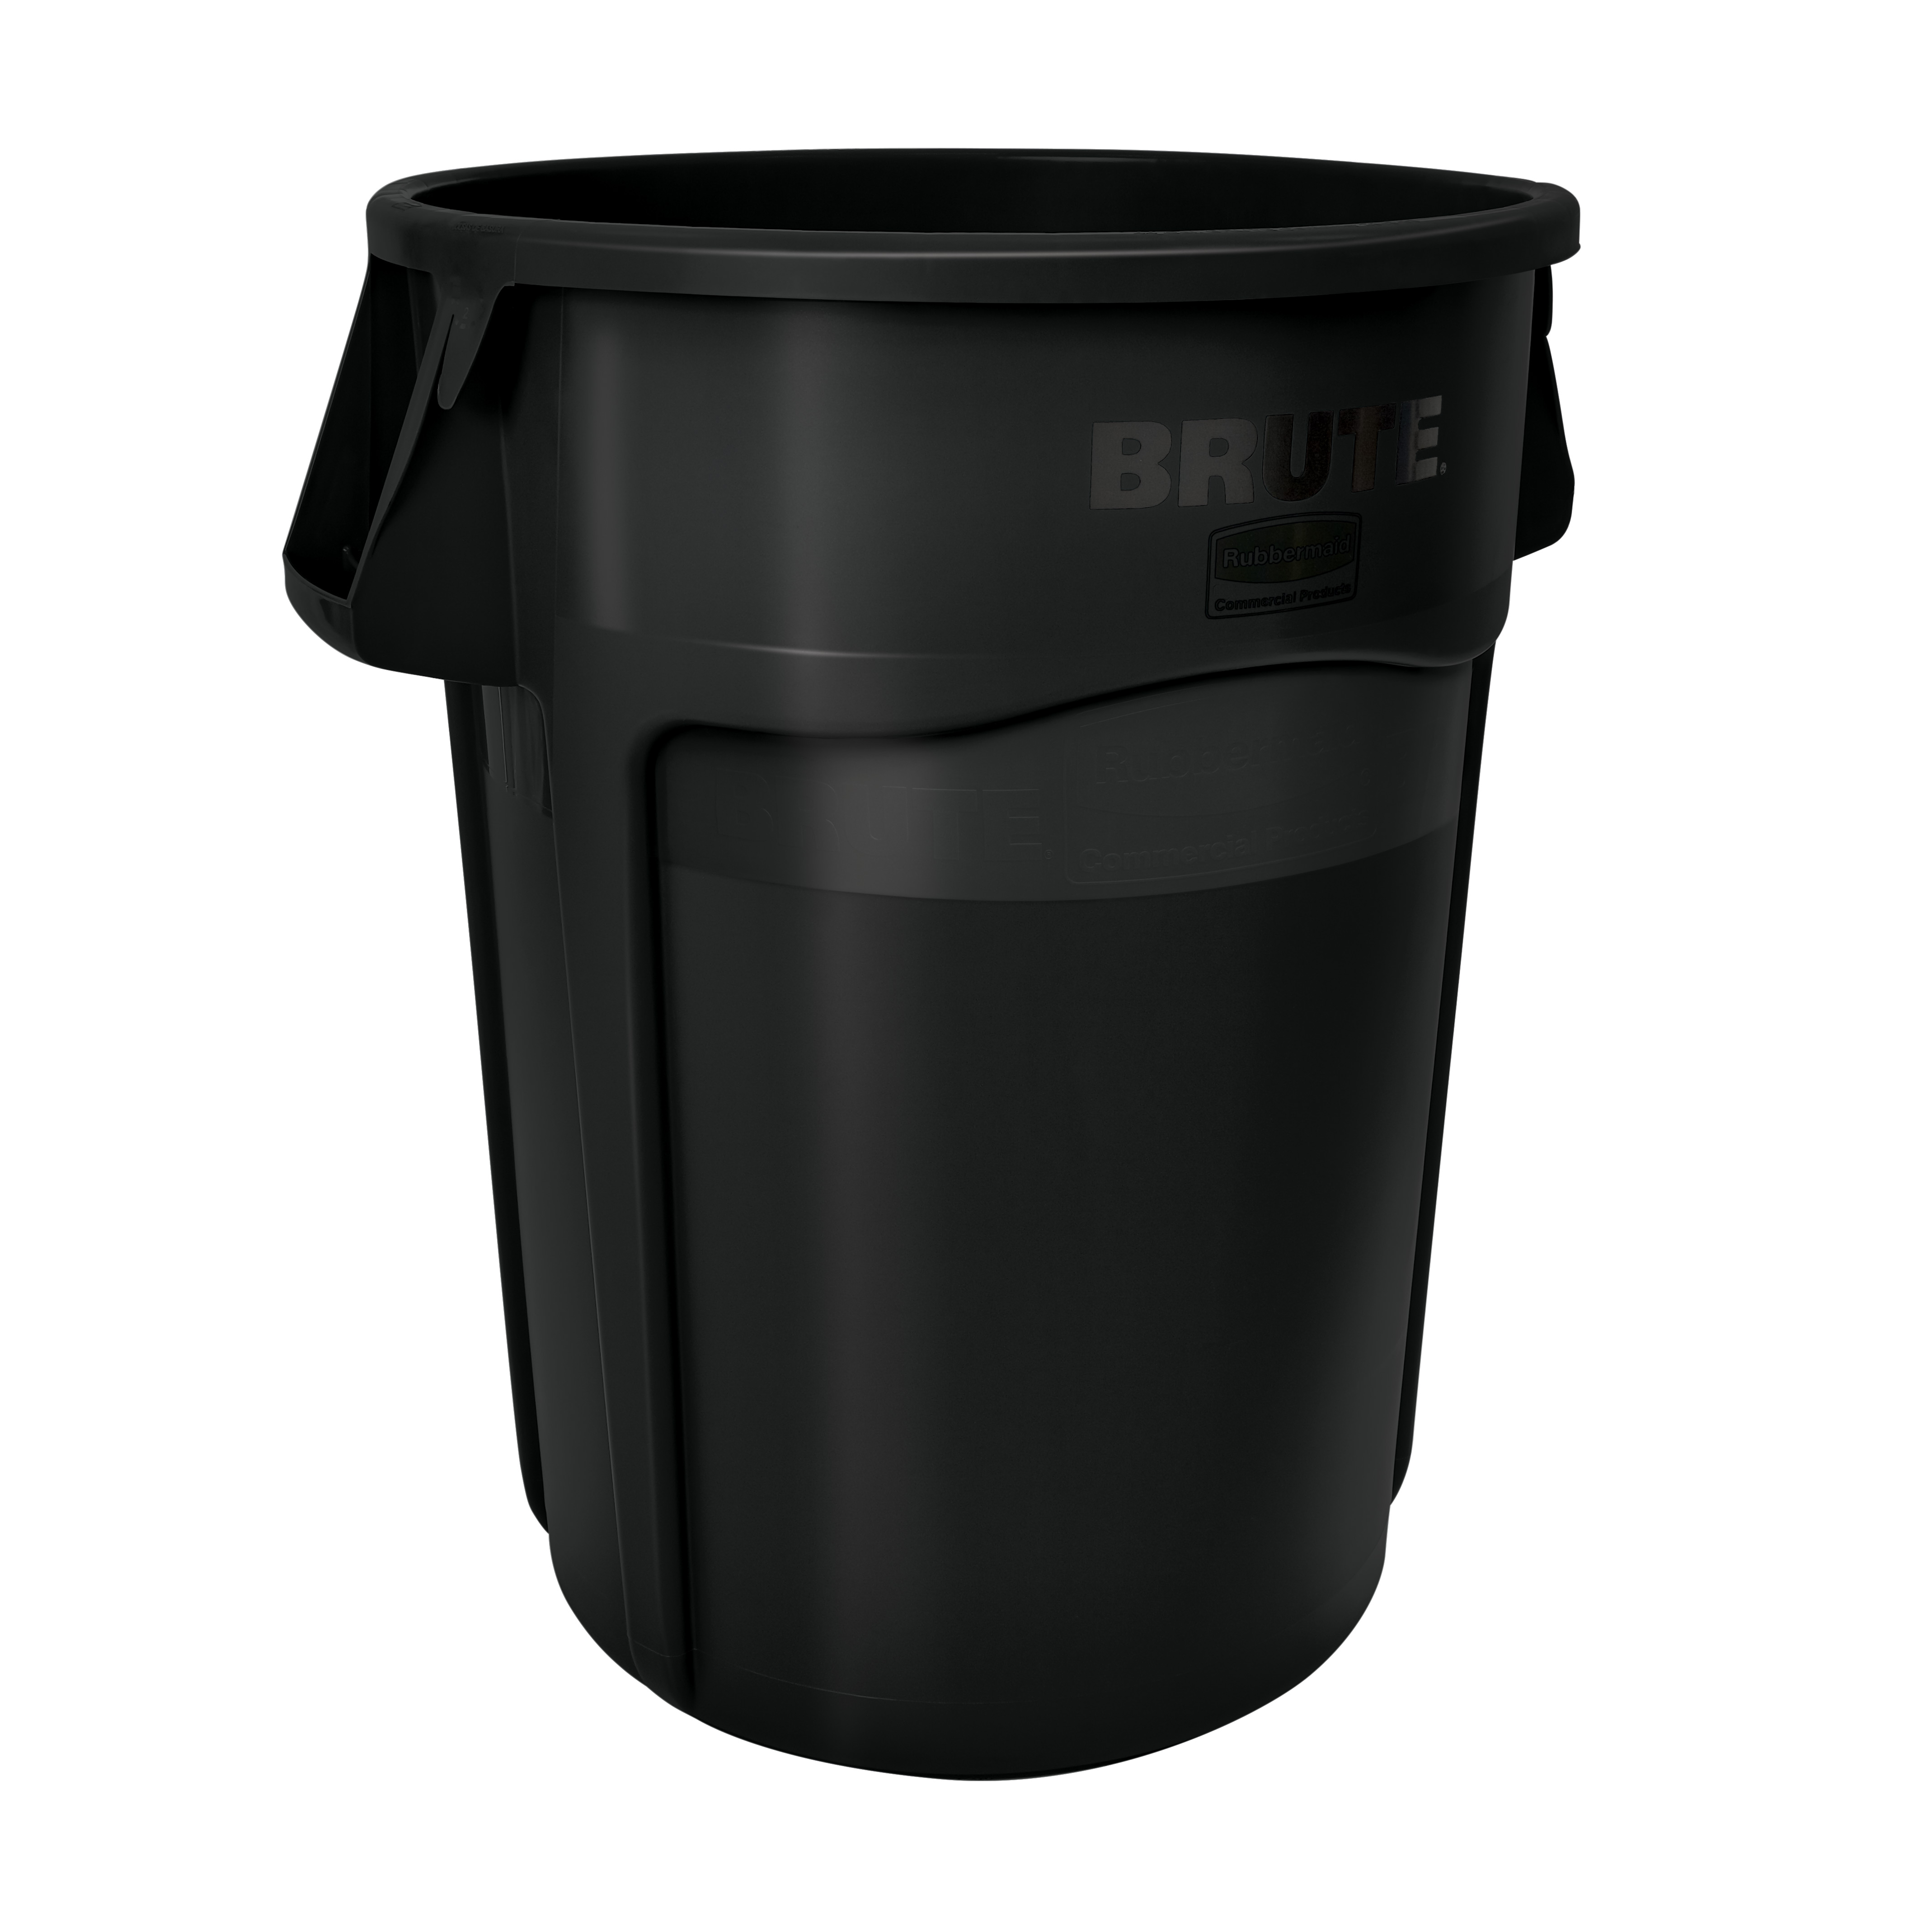 Rubbermaid Commercial Products 1779739 trash can / container, commercial